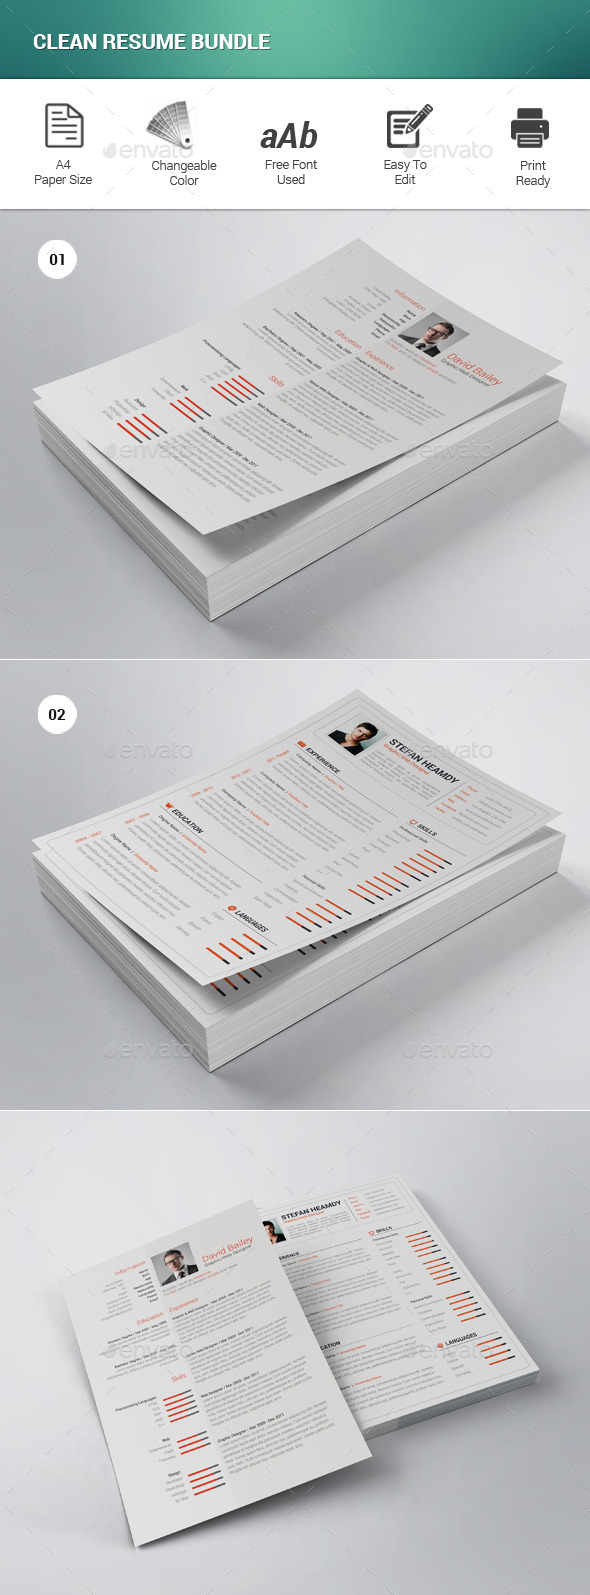 GraphicRiver Clean Resume Bundle 11768082